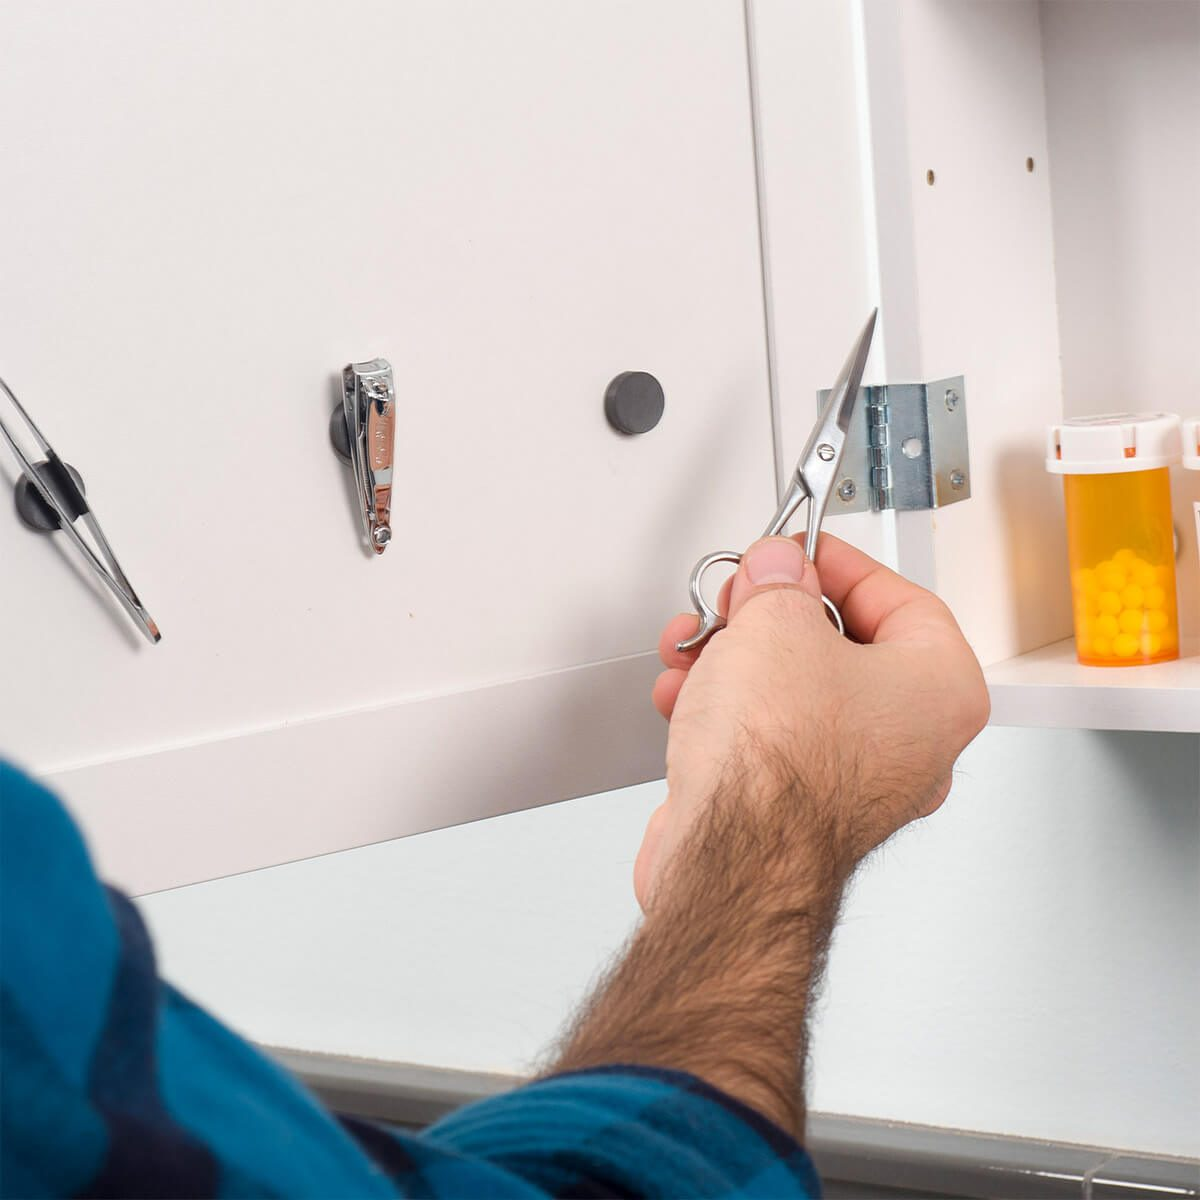 Magnets in the Medicine Cabinet